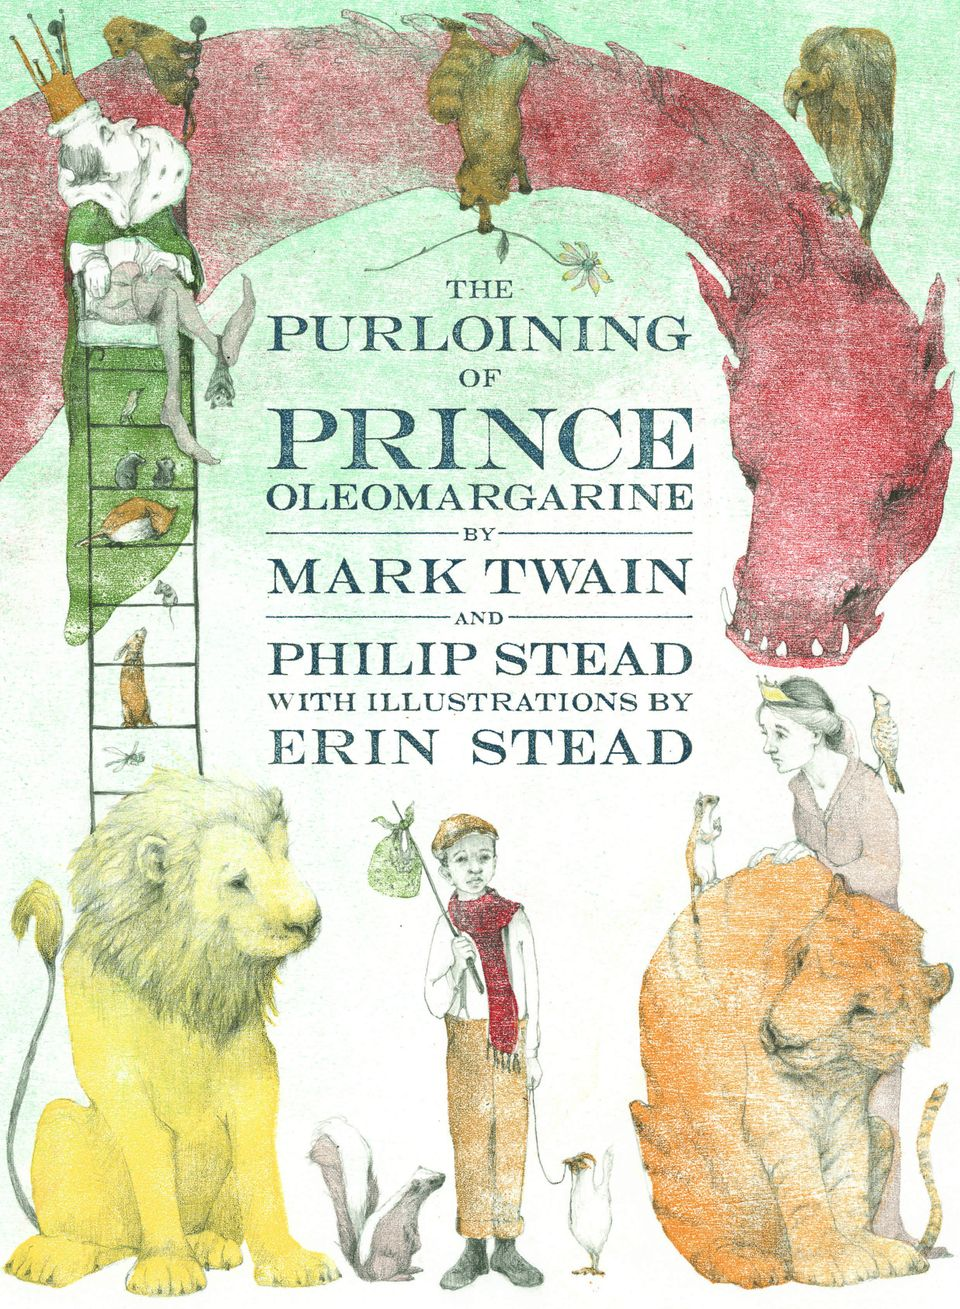 Read A Chapter Of Mark Twain's Previously Unpublished Children's